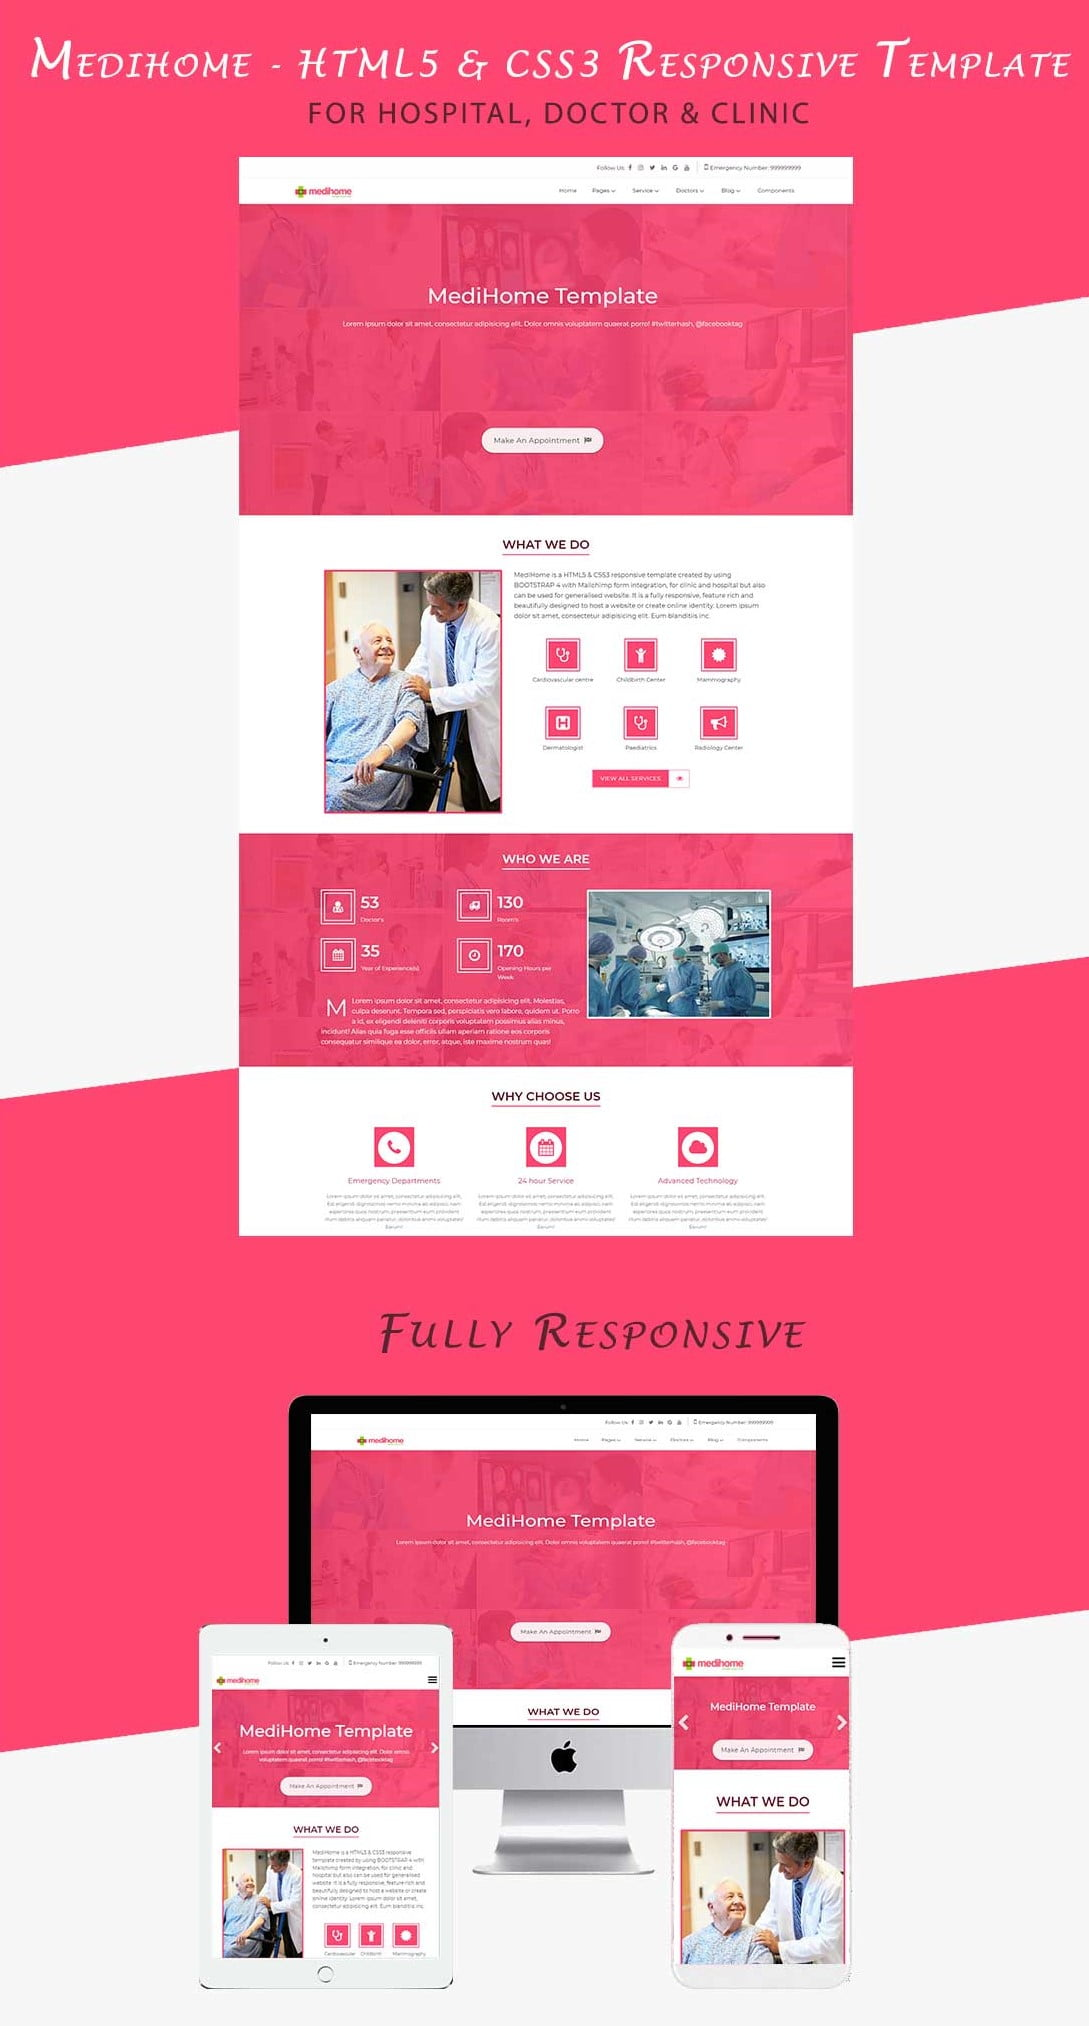 Medihome - HTML5 & CSS3 Responsive Template for Hospital & Clinic